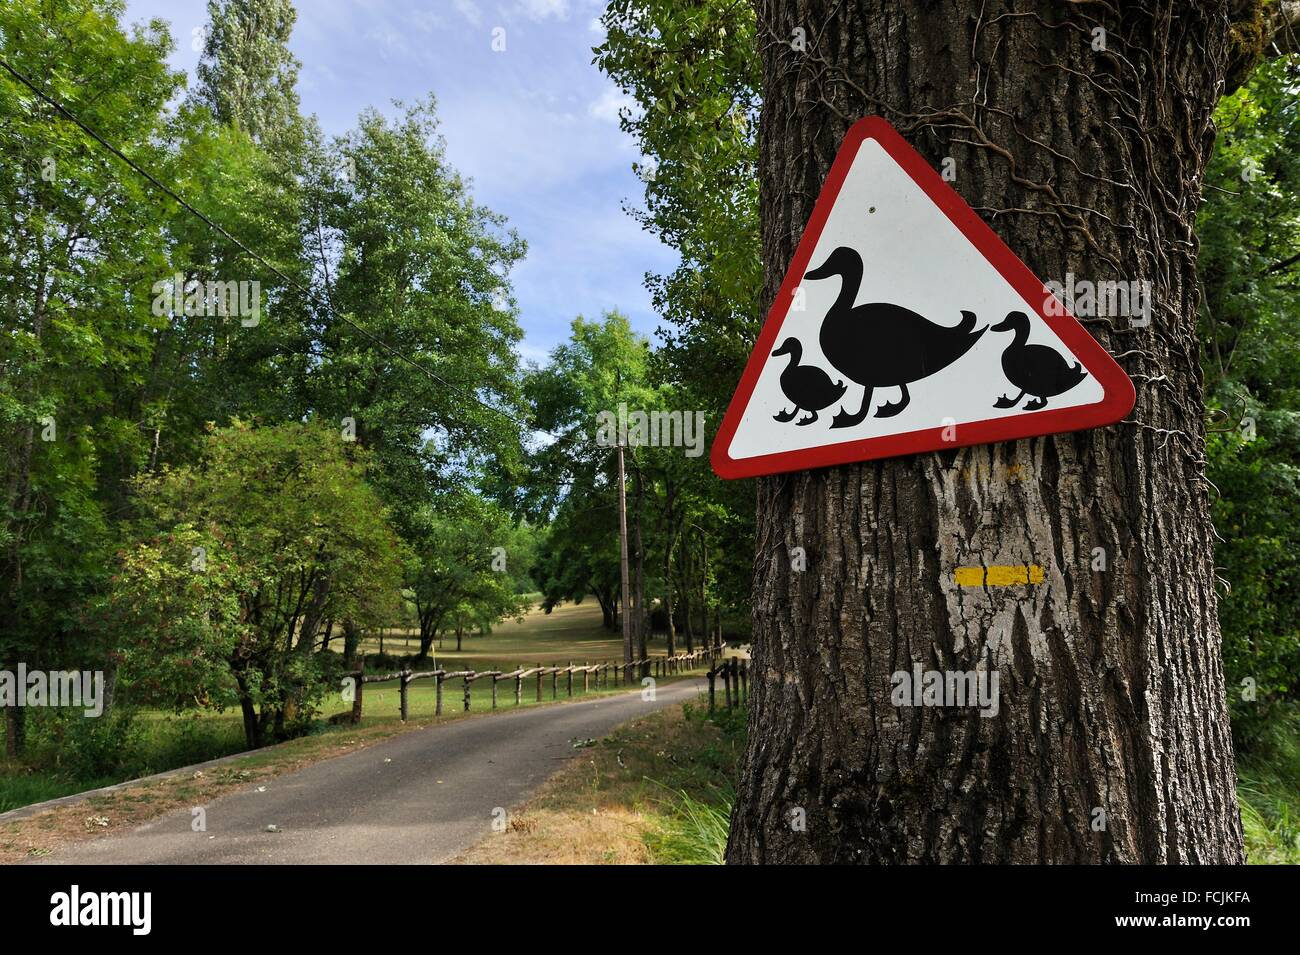 unusual road sign, Lot department, region of Midi-Pyrenees, southwest of France, Europe. - Stock Image